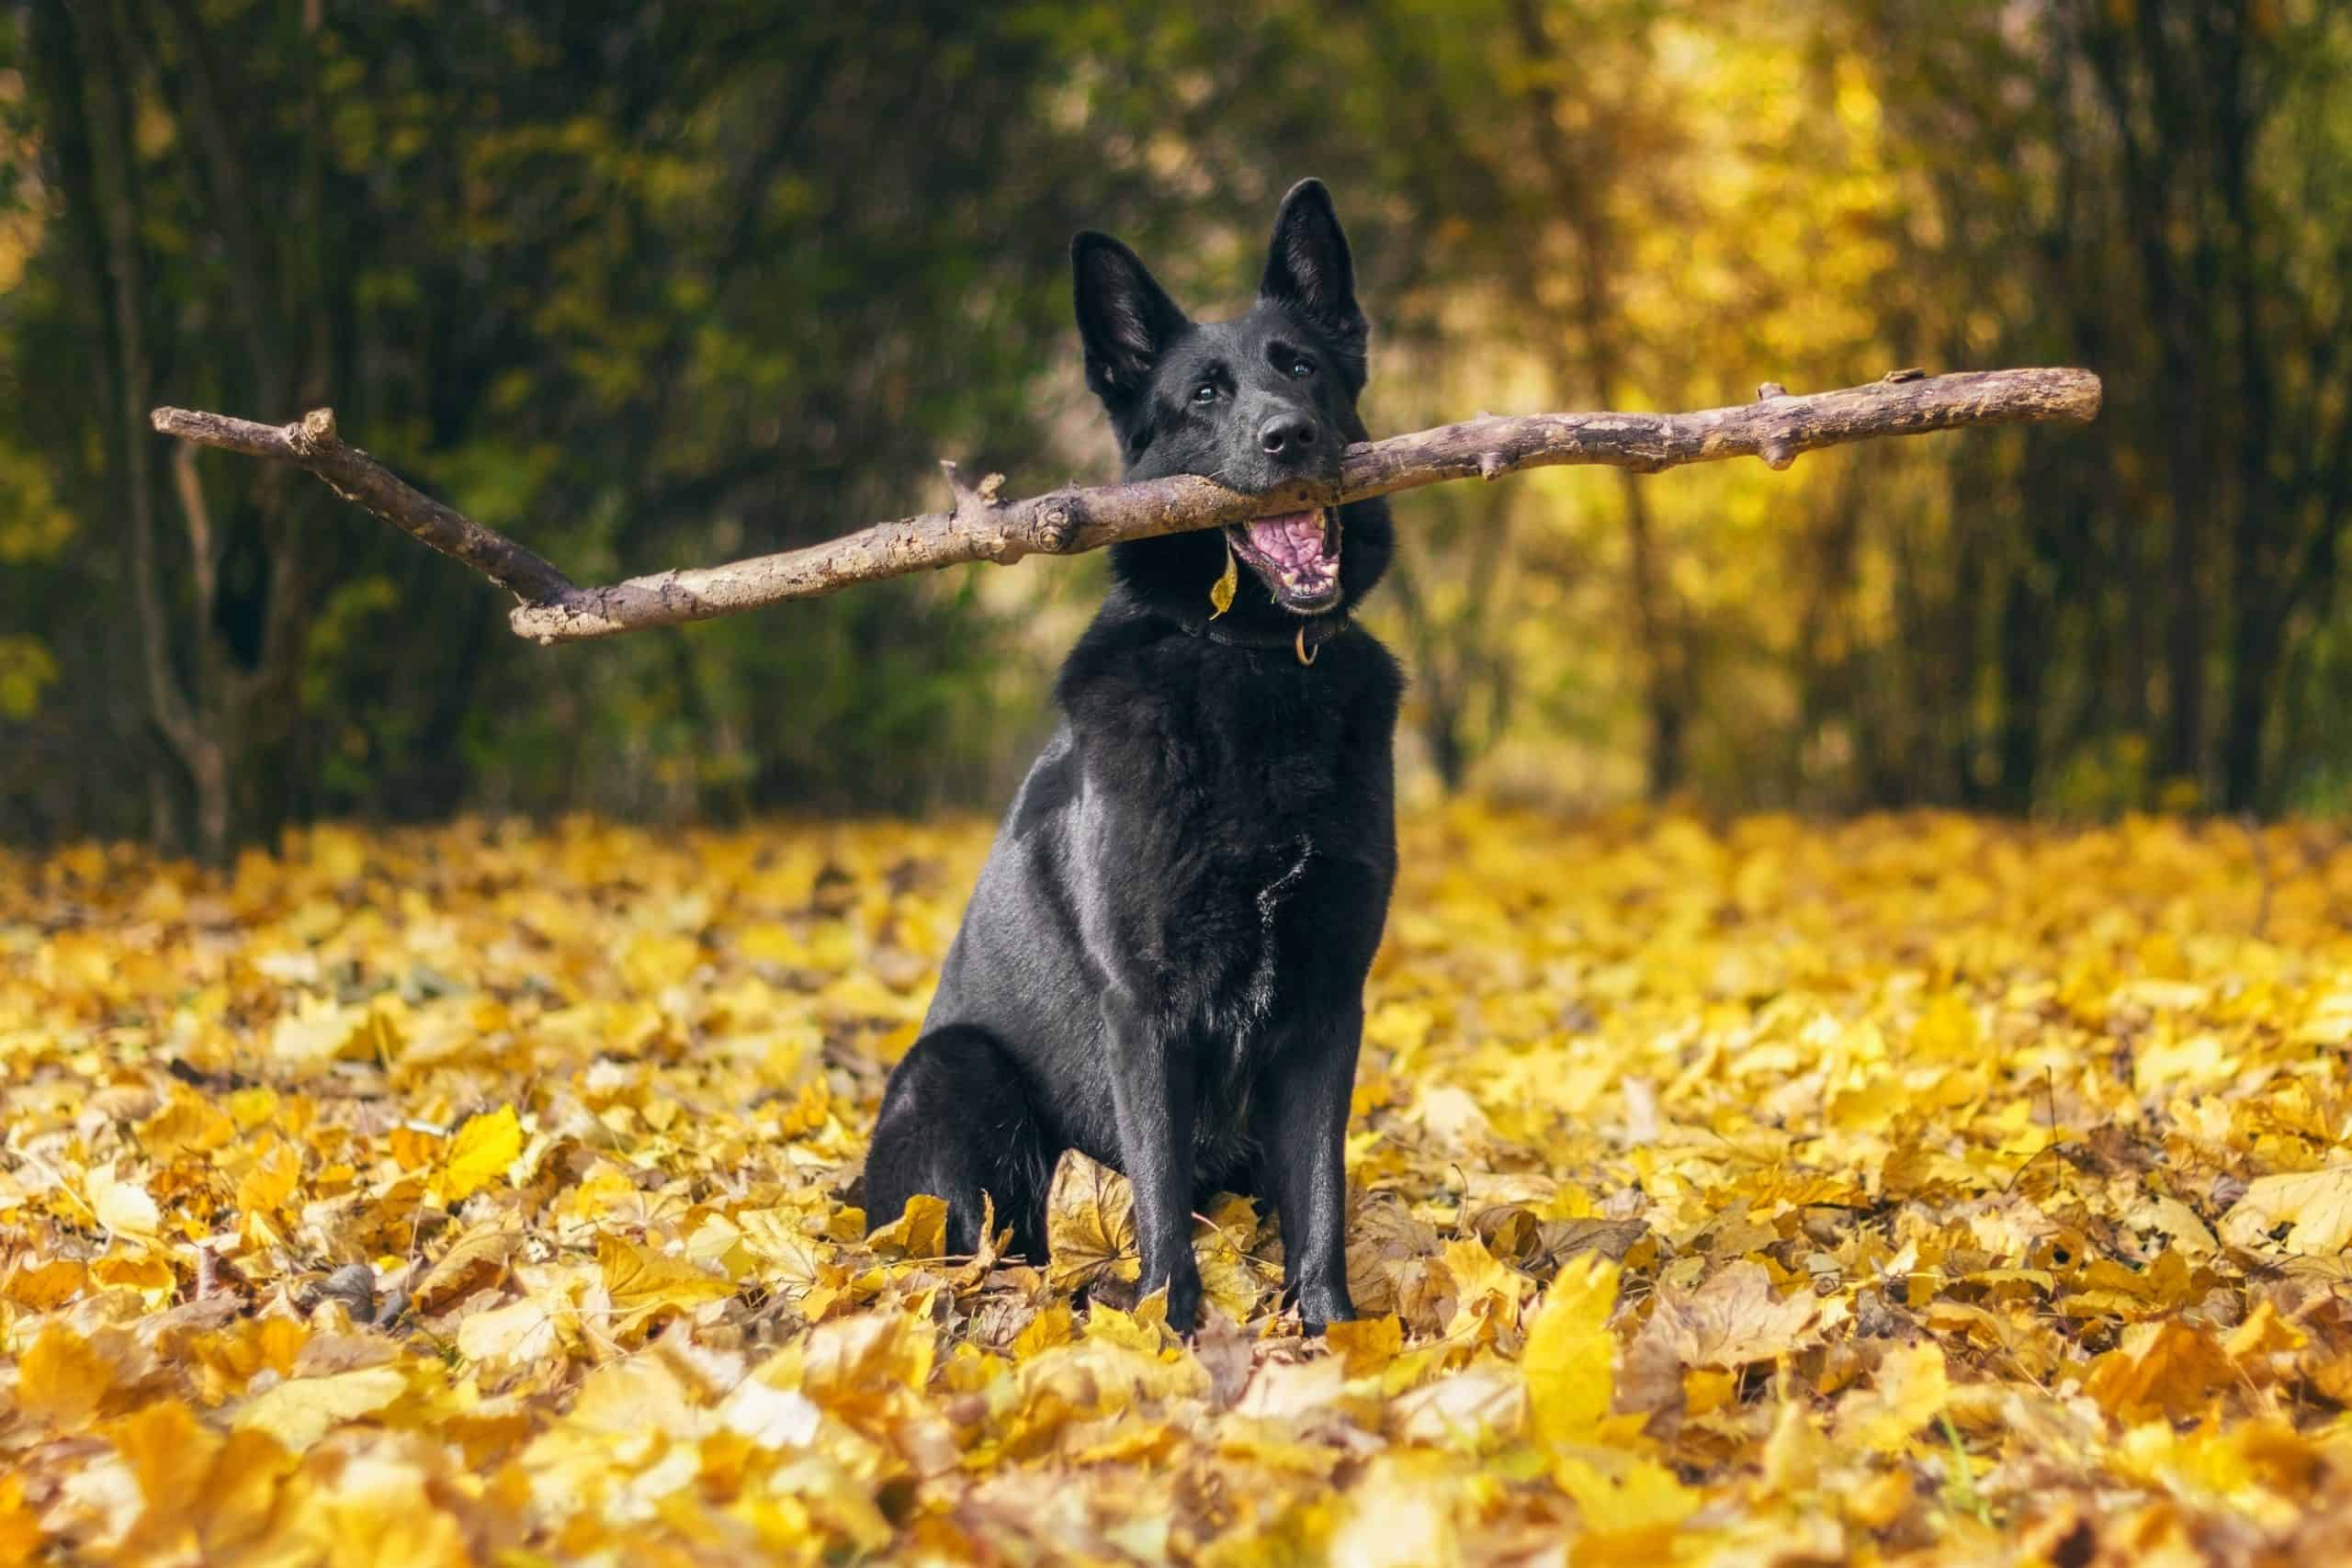 Black German Shepherd holds a big stick.